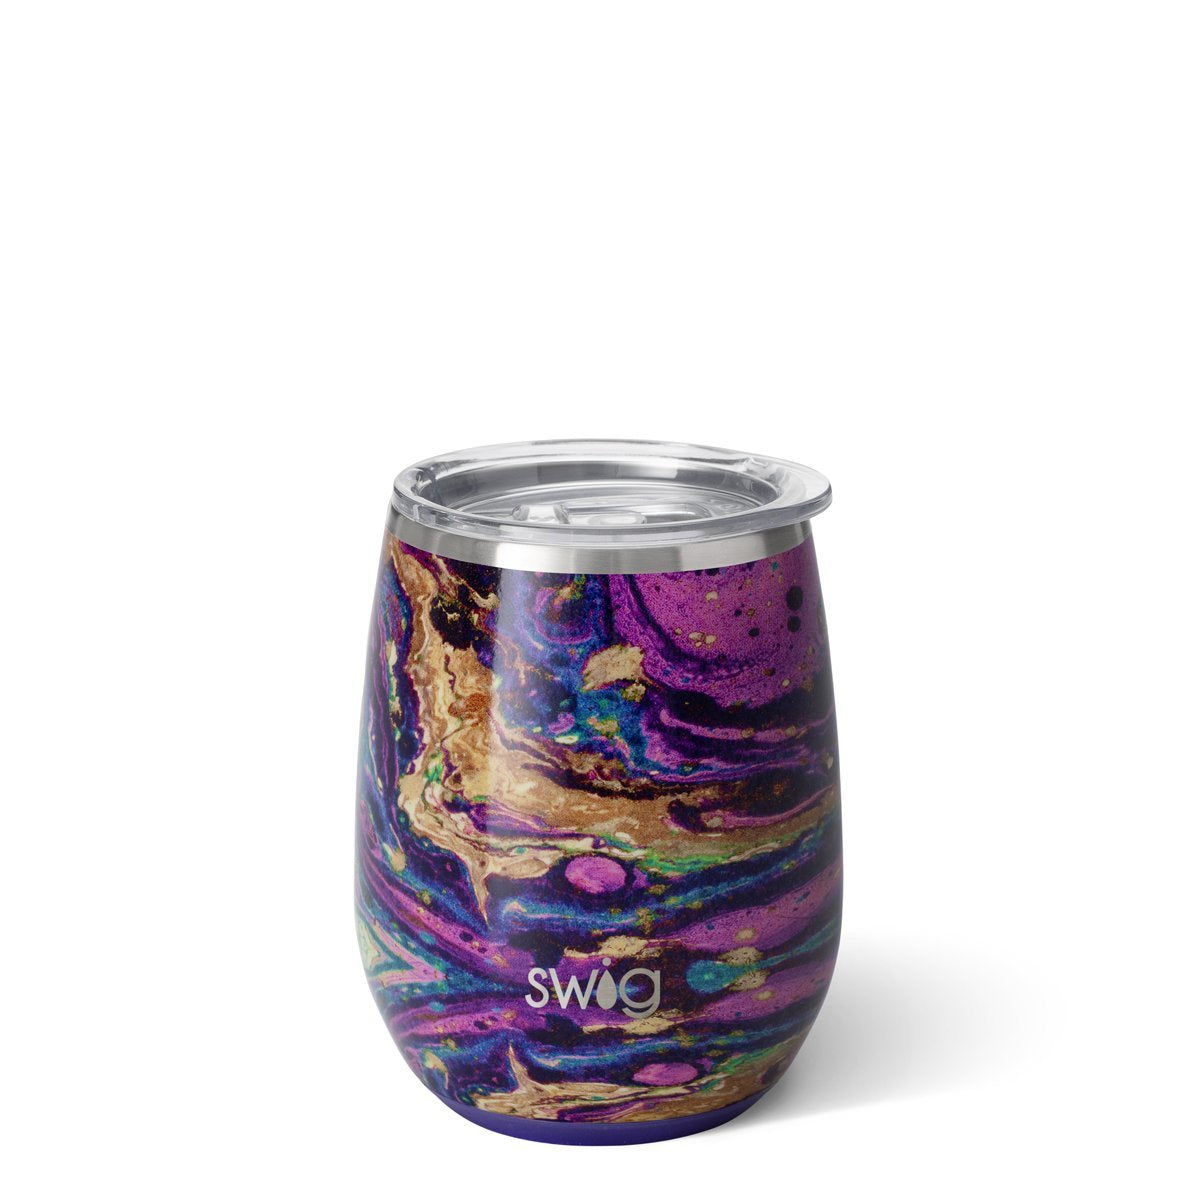 SWIG - 14 OZ STEMLESS WINE CUP IN PURPLE REIGN